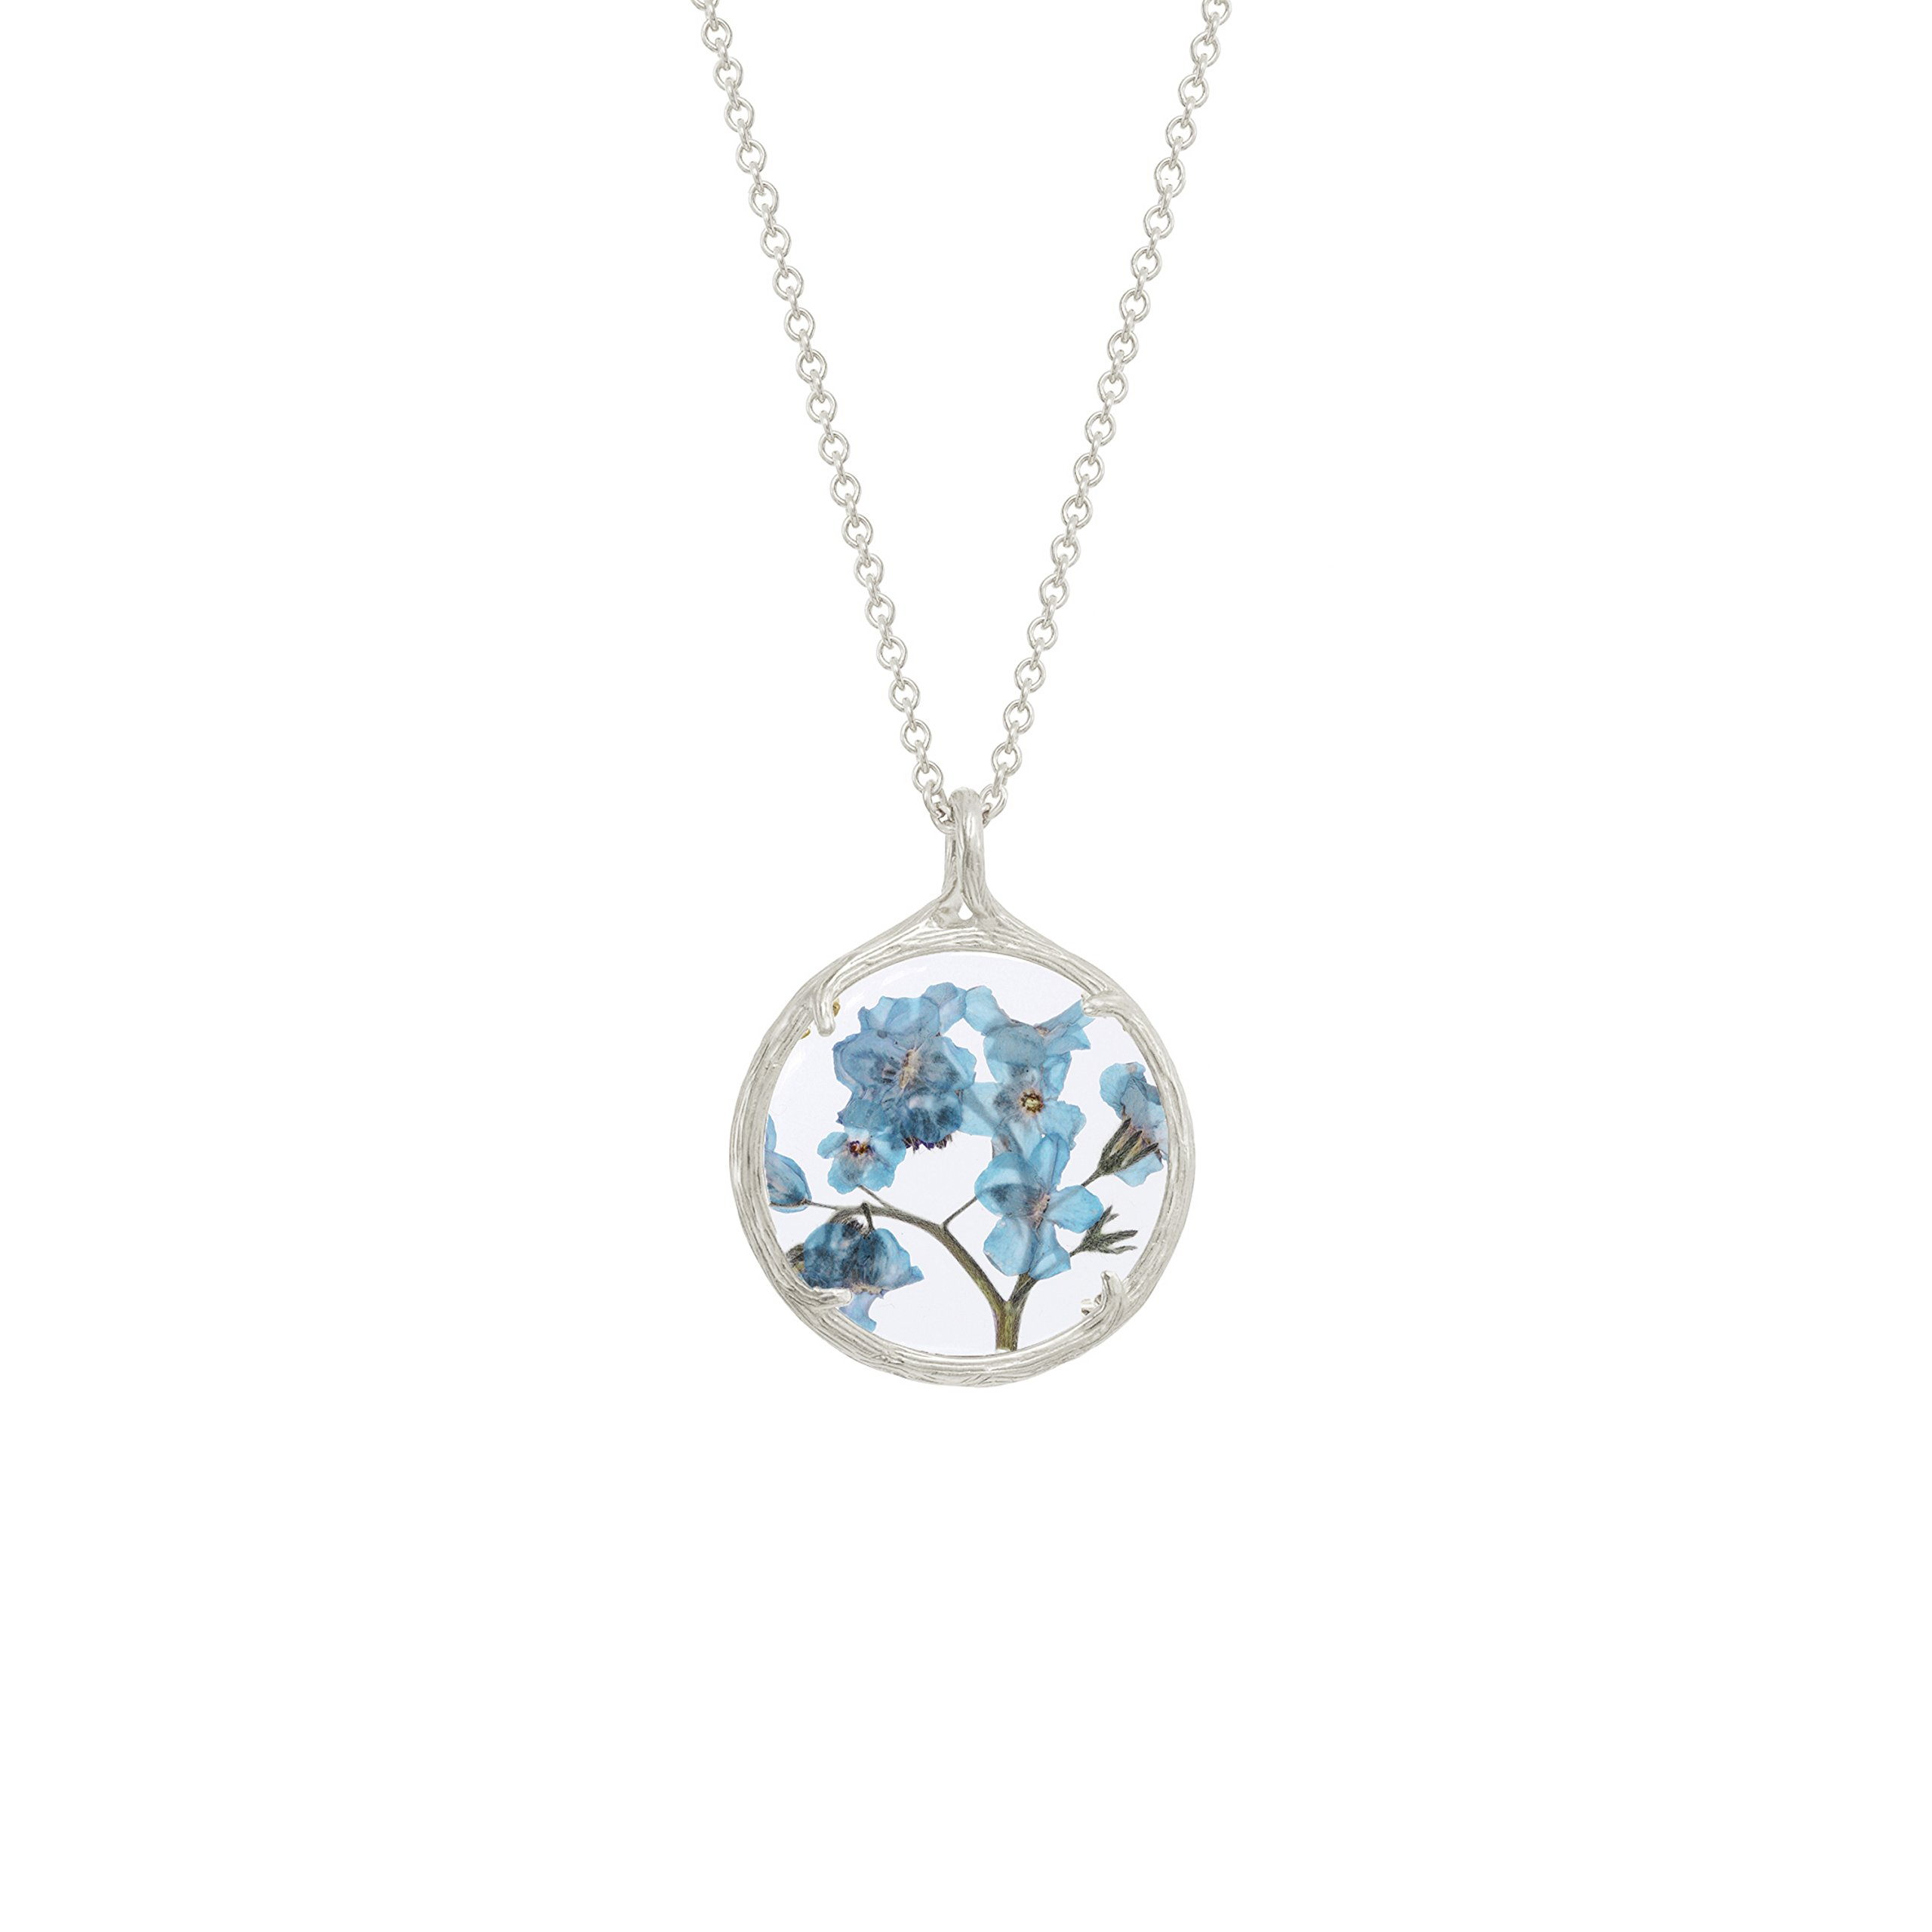 Botanical Pendant Necklace with Delicate Dried Flowers in Glass Charm (Forget Me Not Flowers, silver-plated-base)